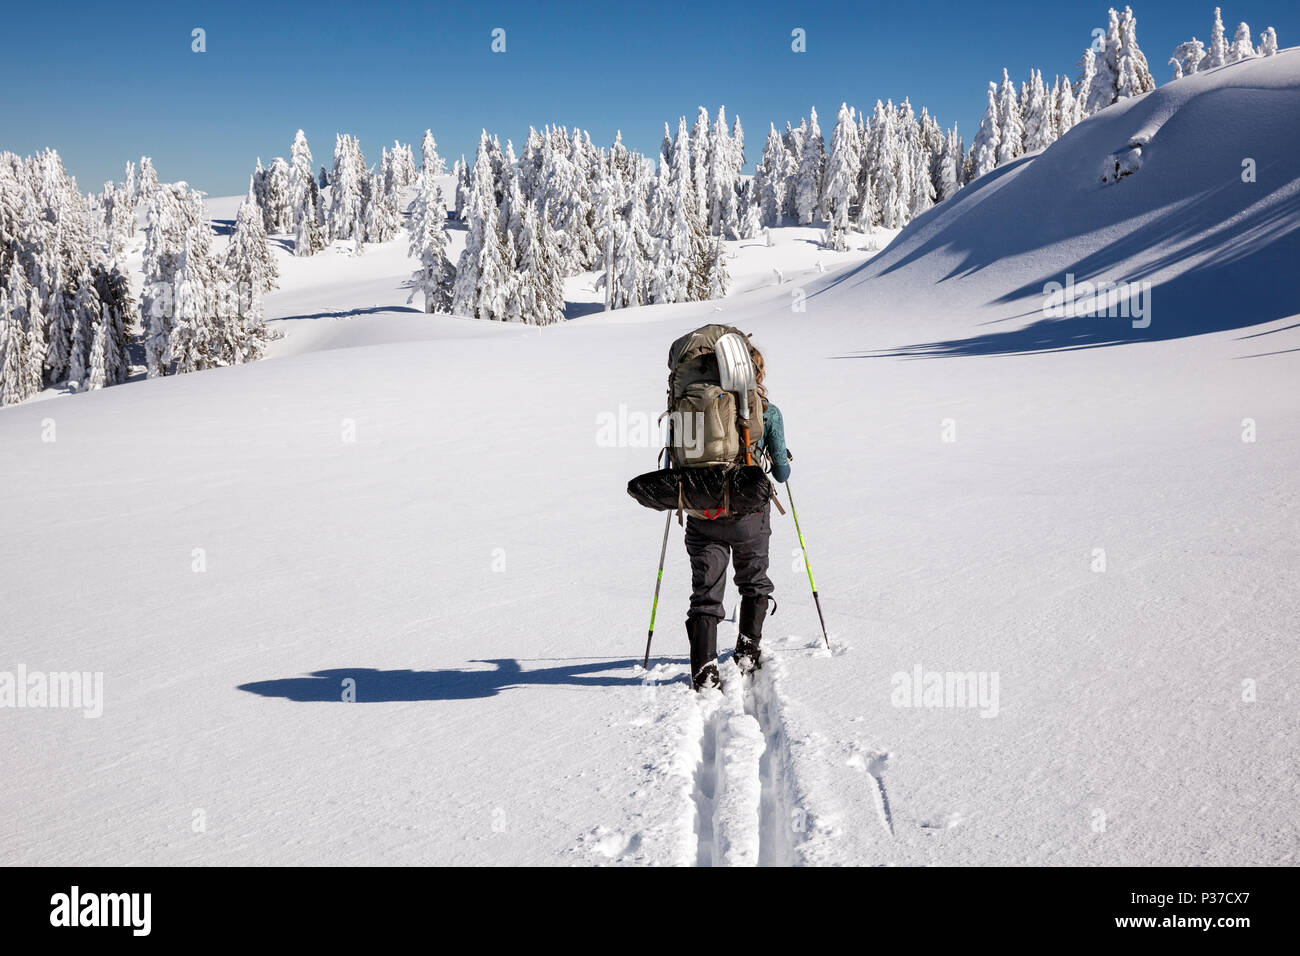 OR02515-00...OREGON - Vicky Spring skiing around Crater Lake on the Rim Road near North Junction in Crater Lake National Park. (MR# S1) - Stock Image